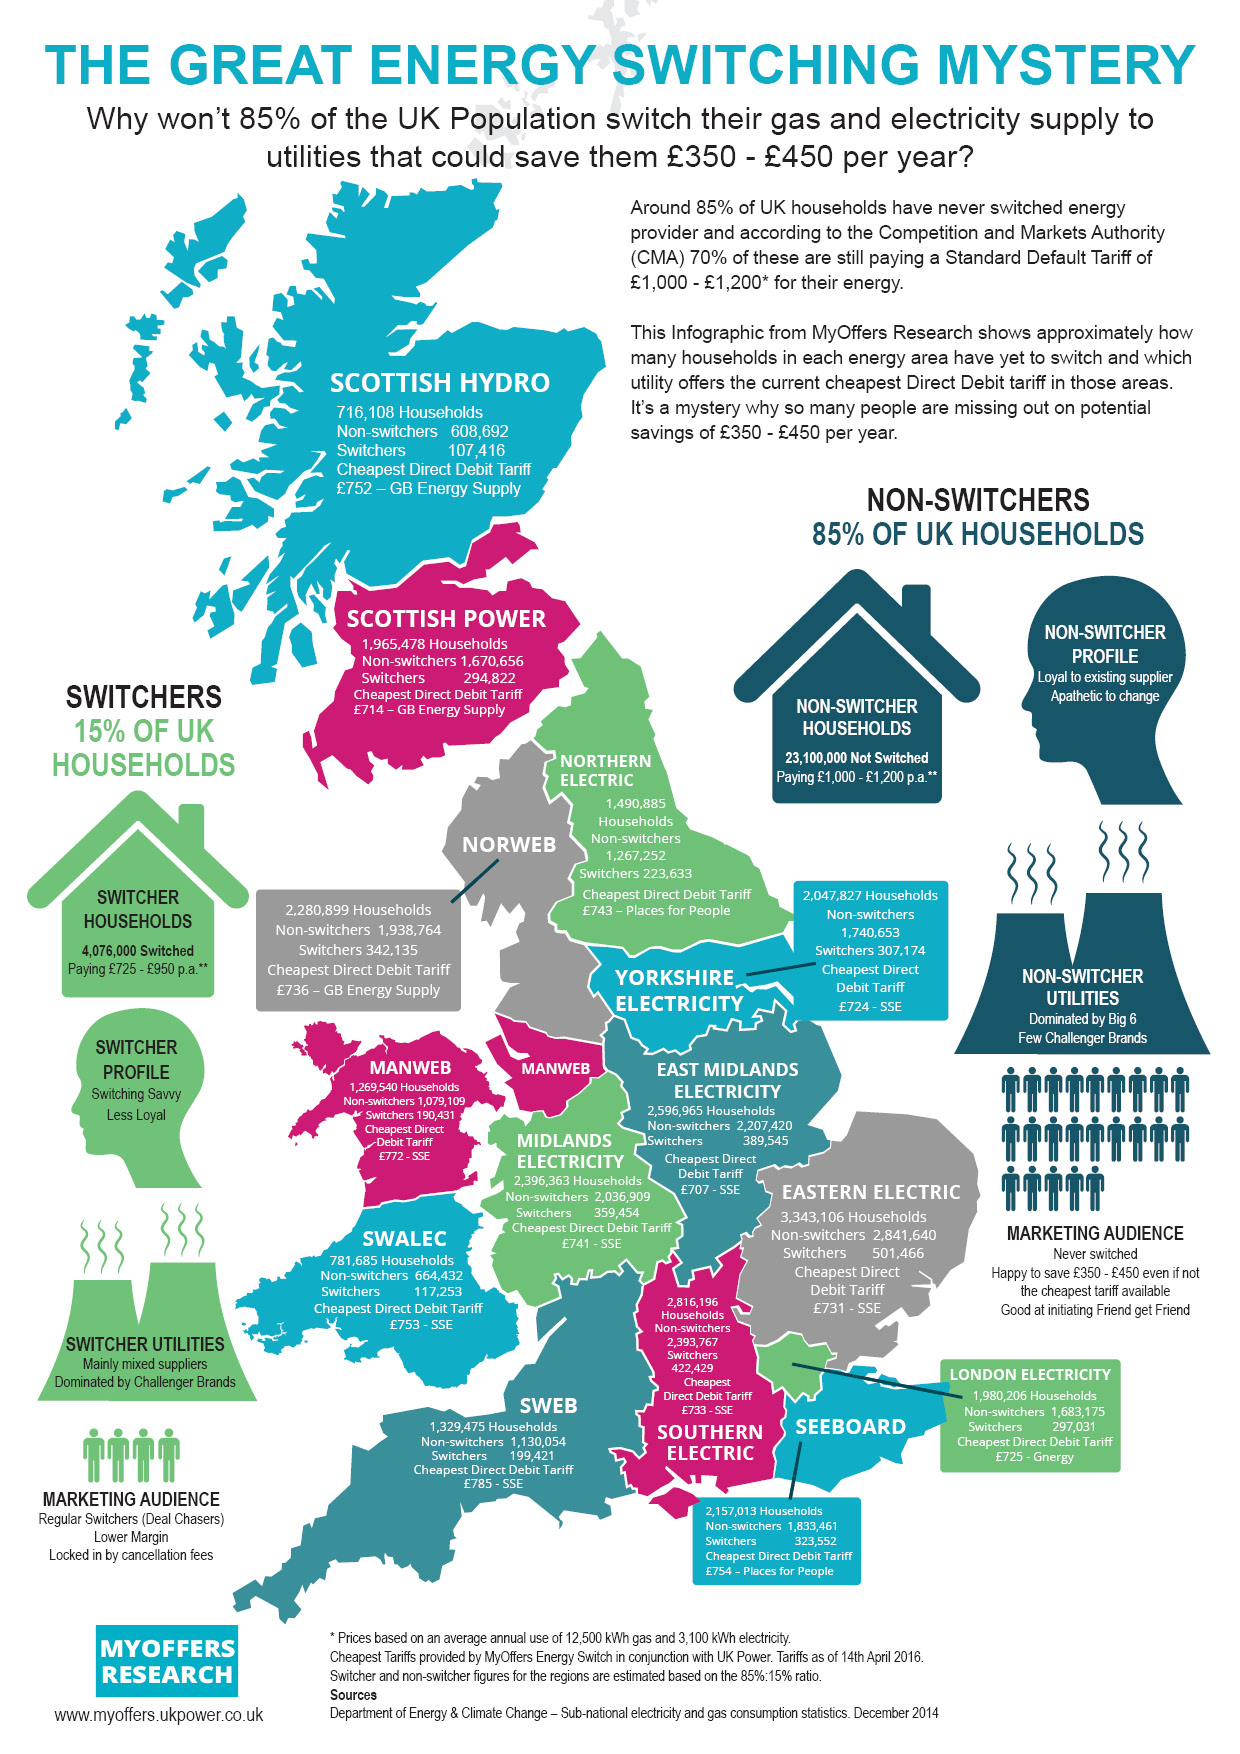 The great energy switching mystery infographic